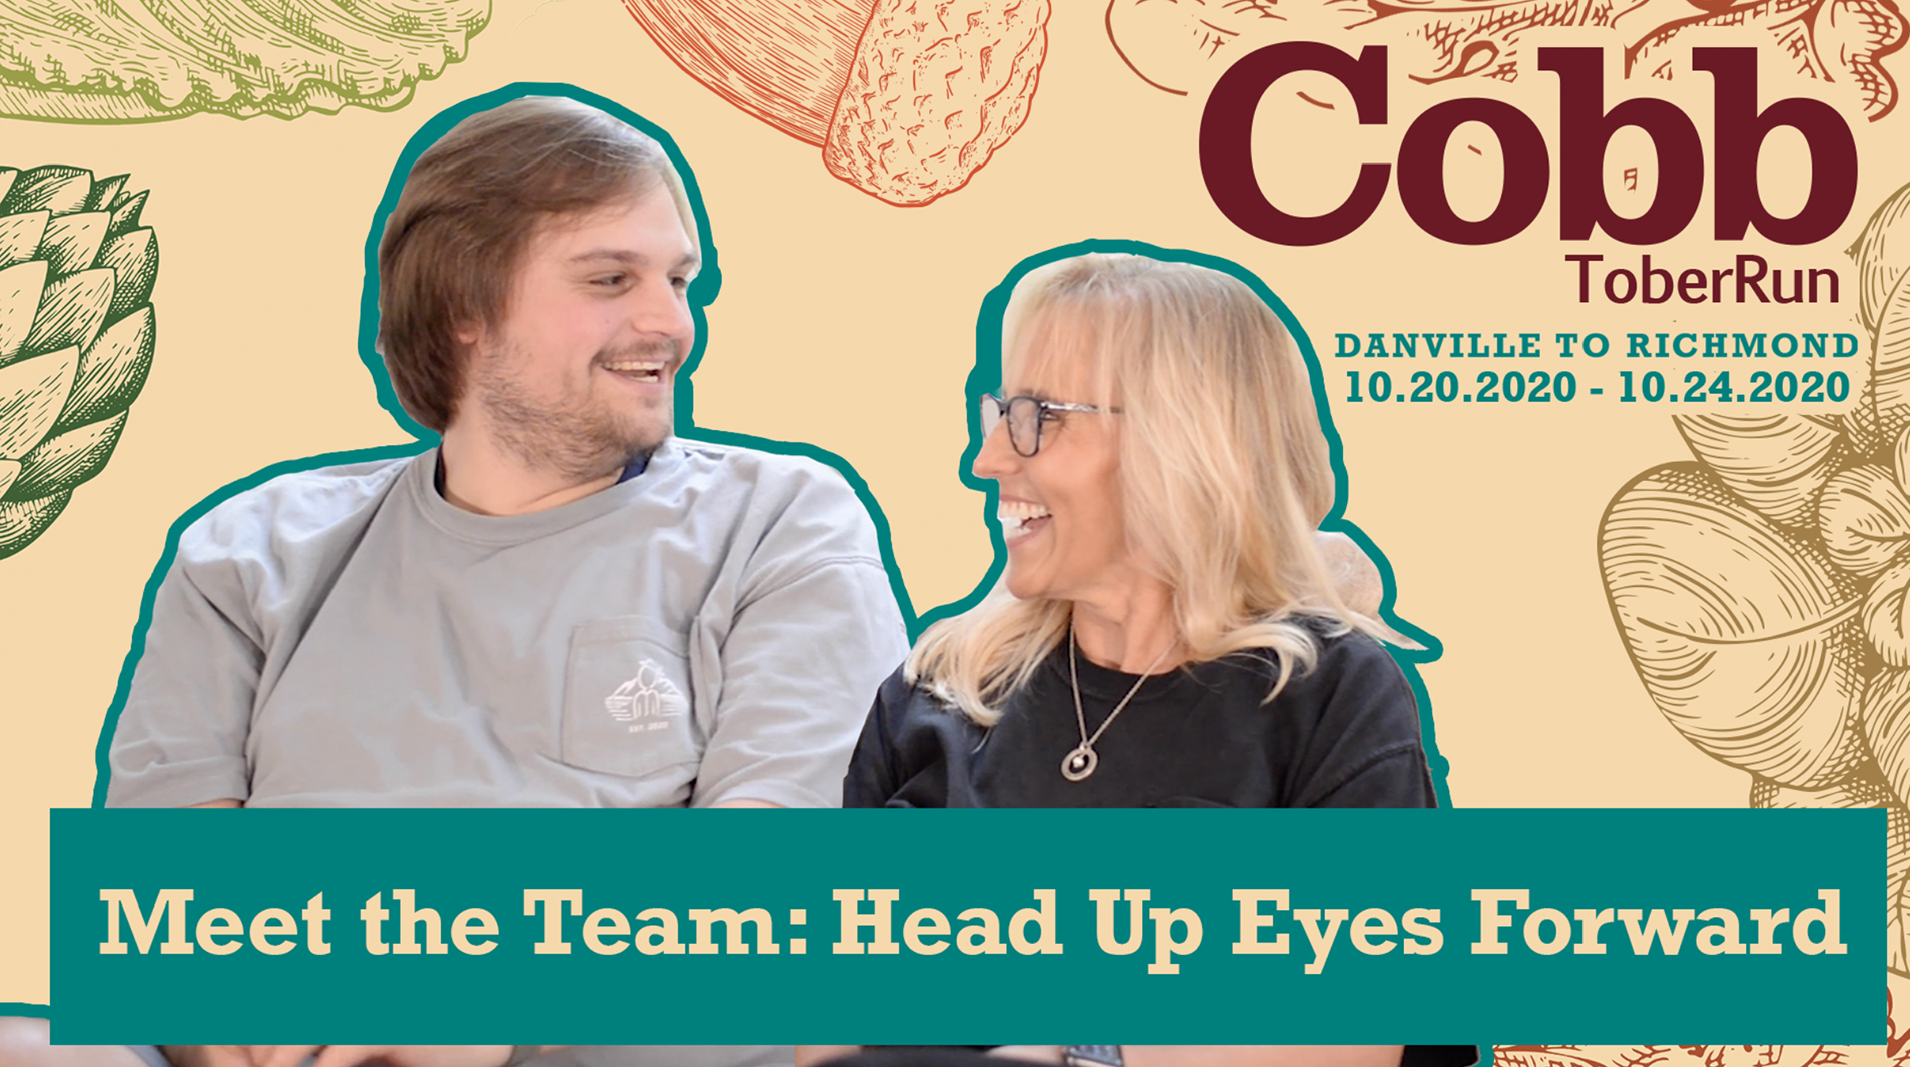 CobbtoberRun 2020 Meet the Team: Head Up Eyes Forward